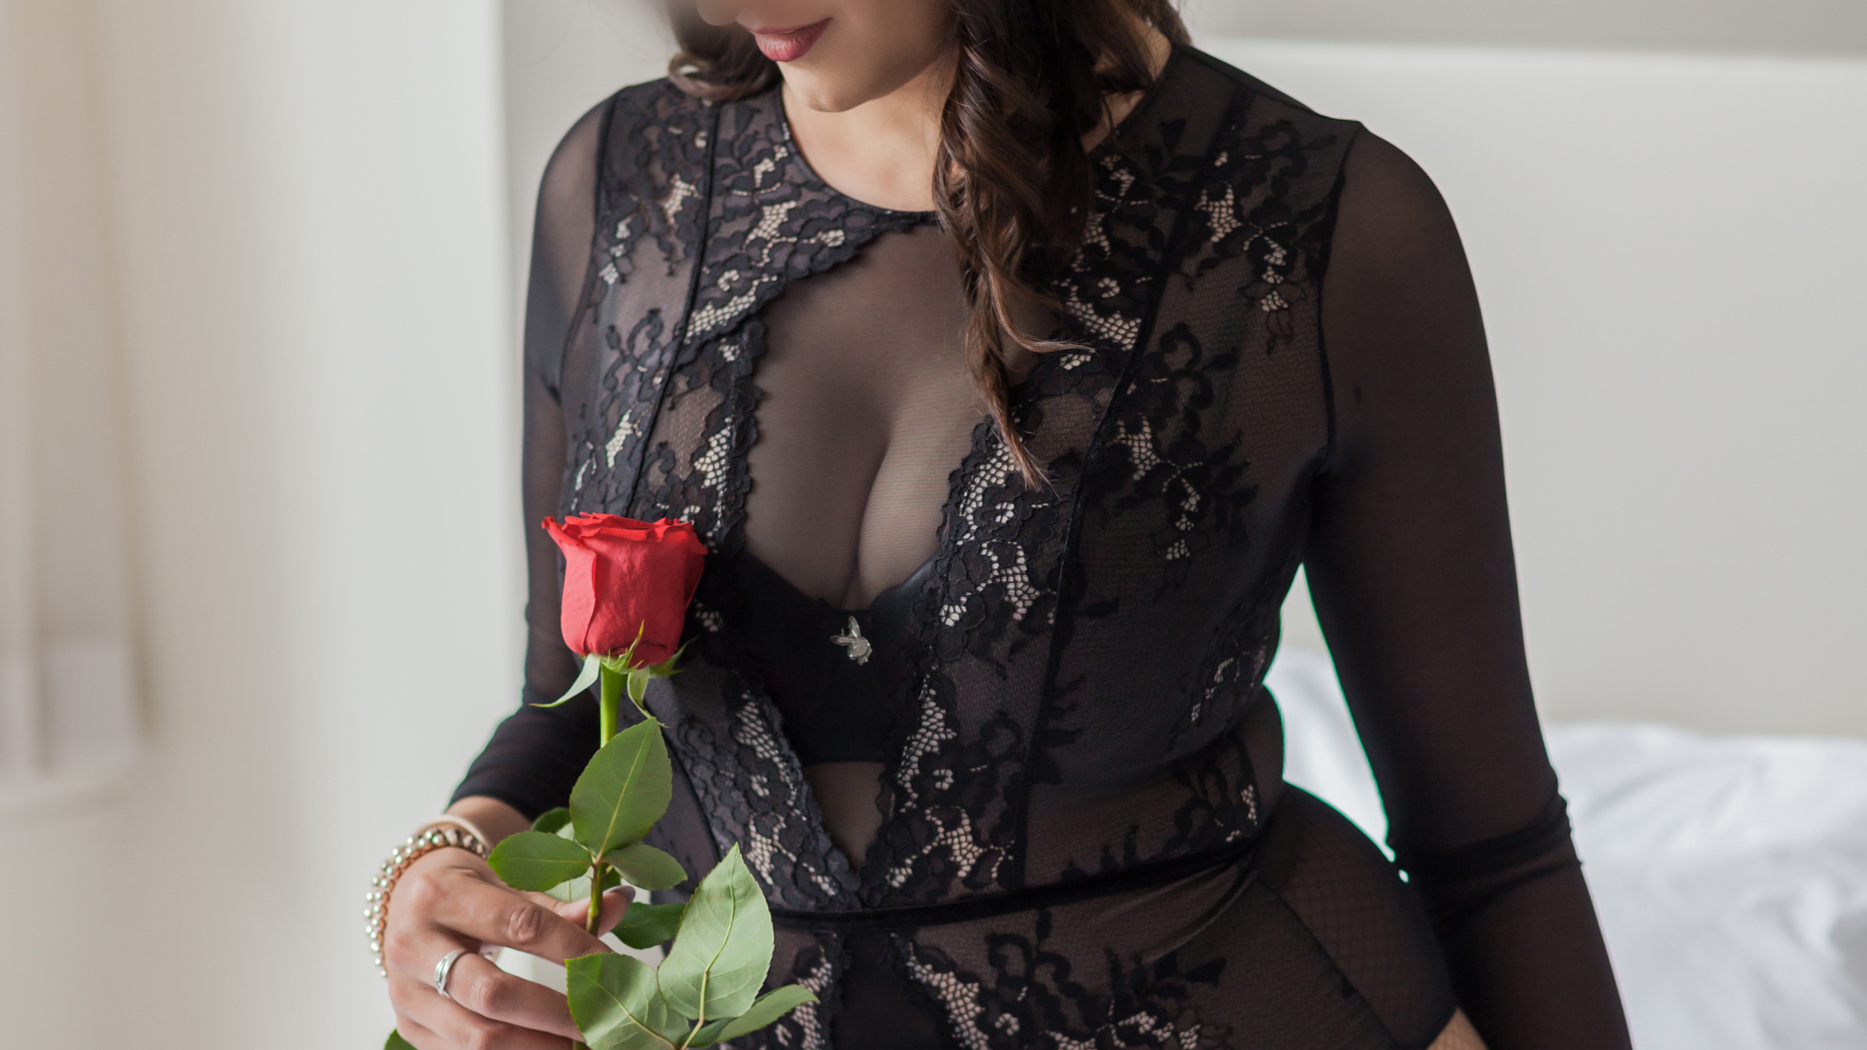 Miss Jordan Quinn, Torso shot, wearing a neck high black lace one piece, she is looking down at a red rose.